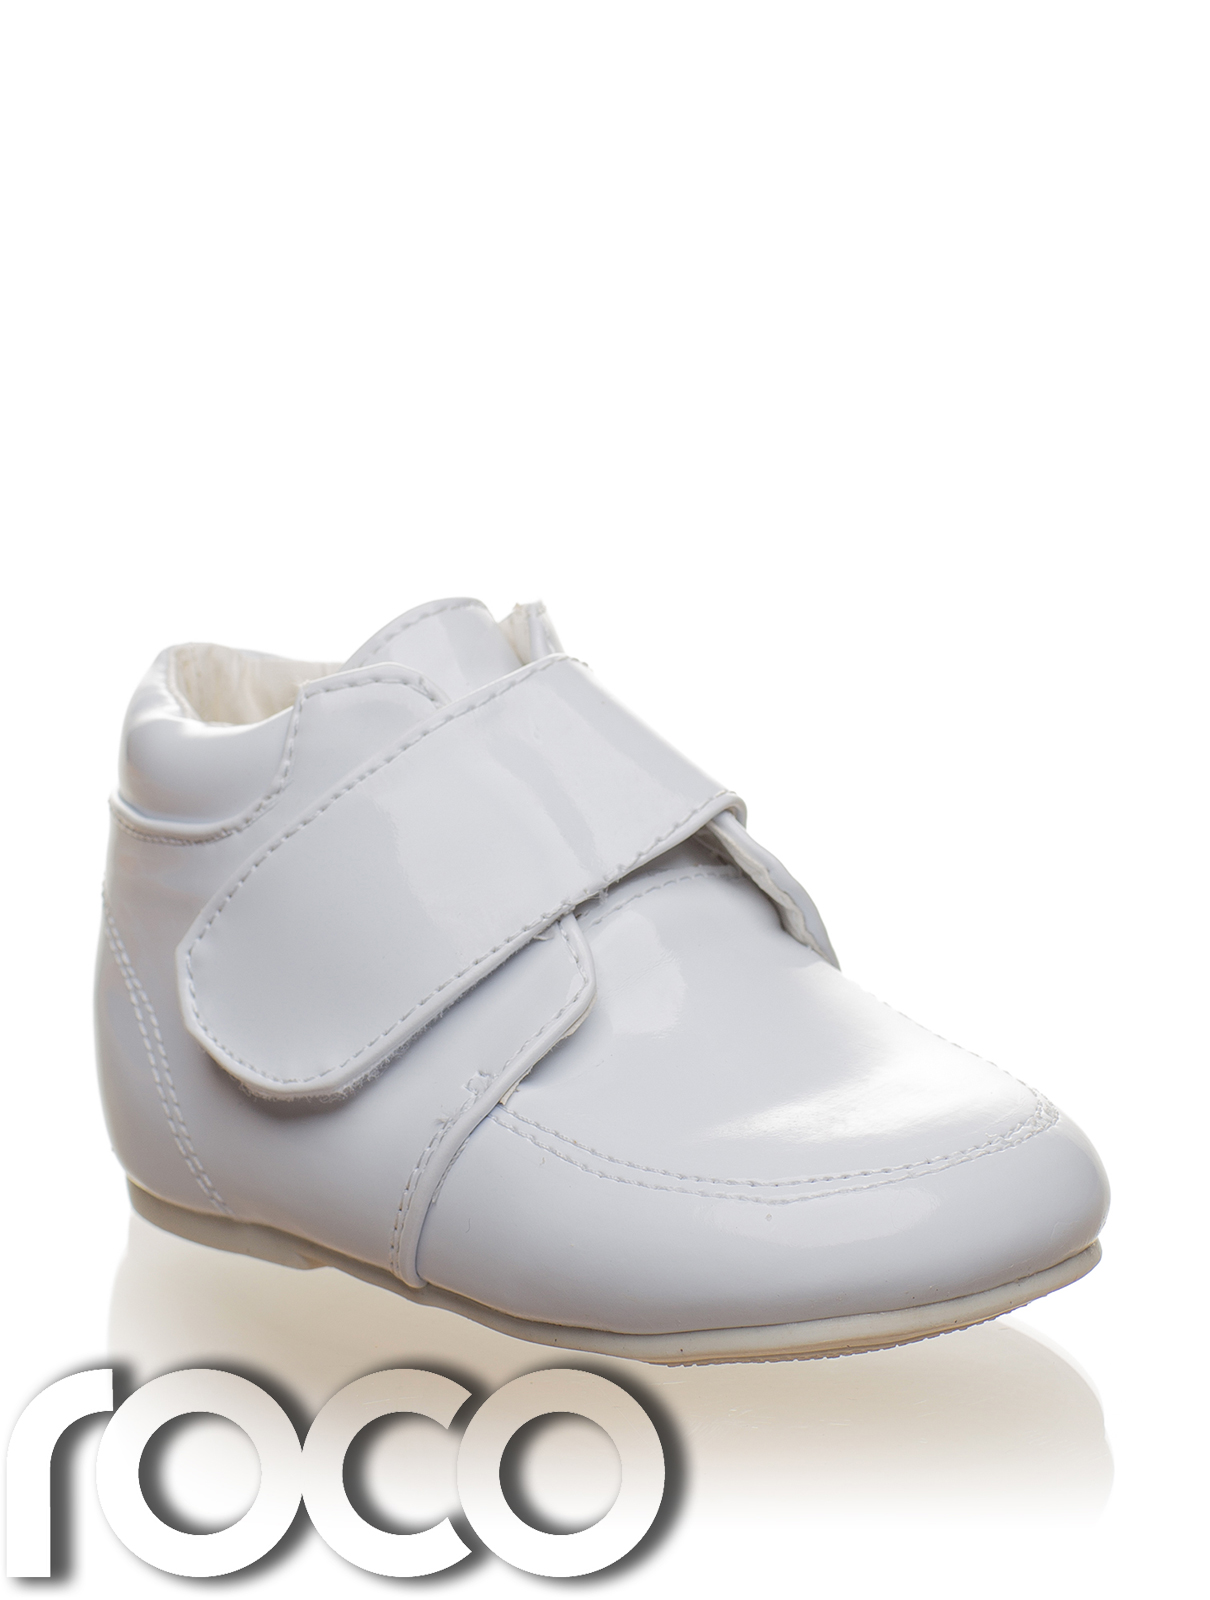 baby boys white velcro wedding formal pageboy bootie